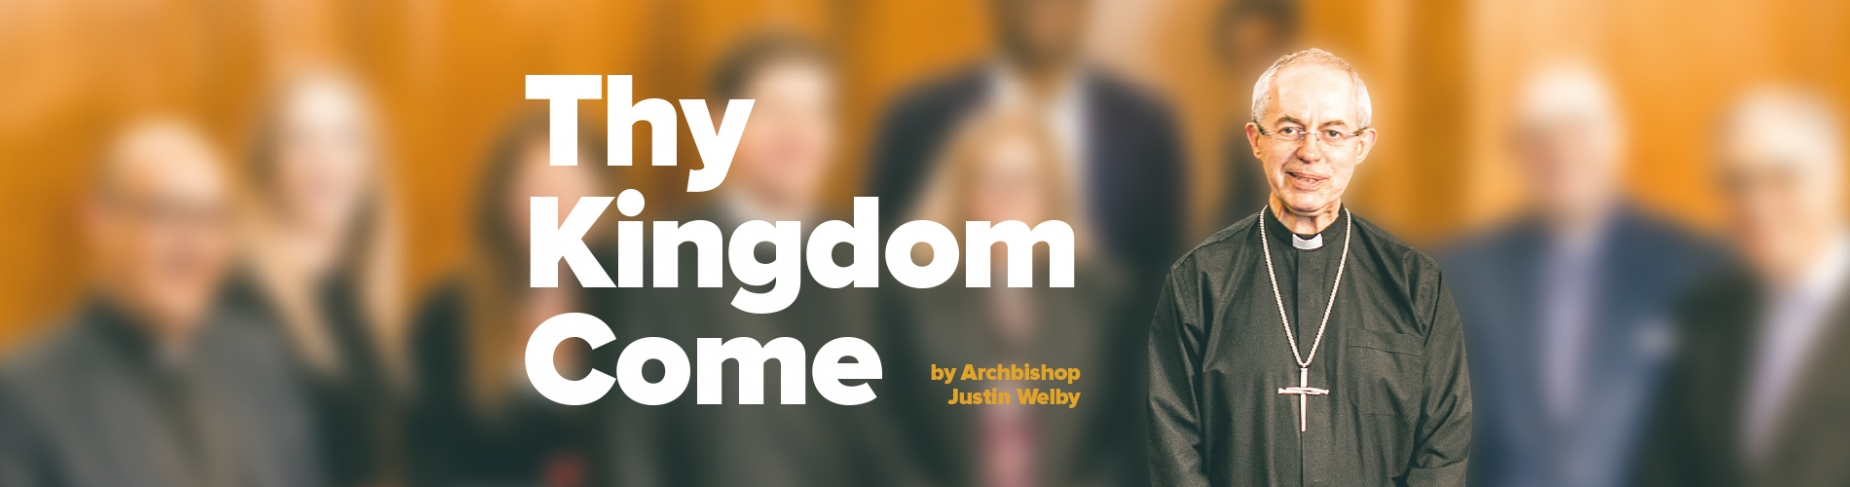 Thy Kingdom Come - Archbishop Justin Welby